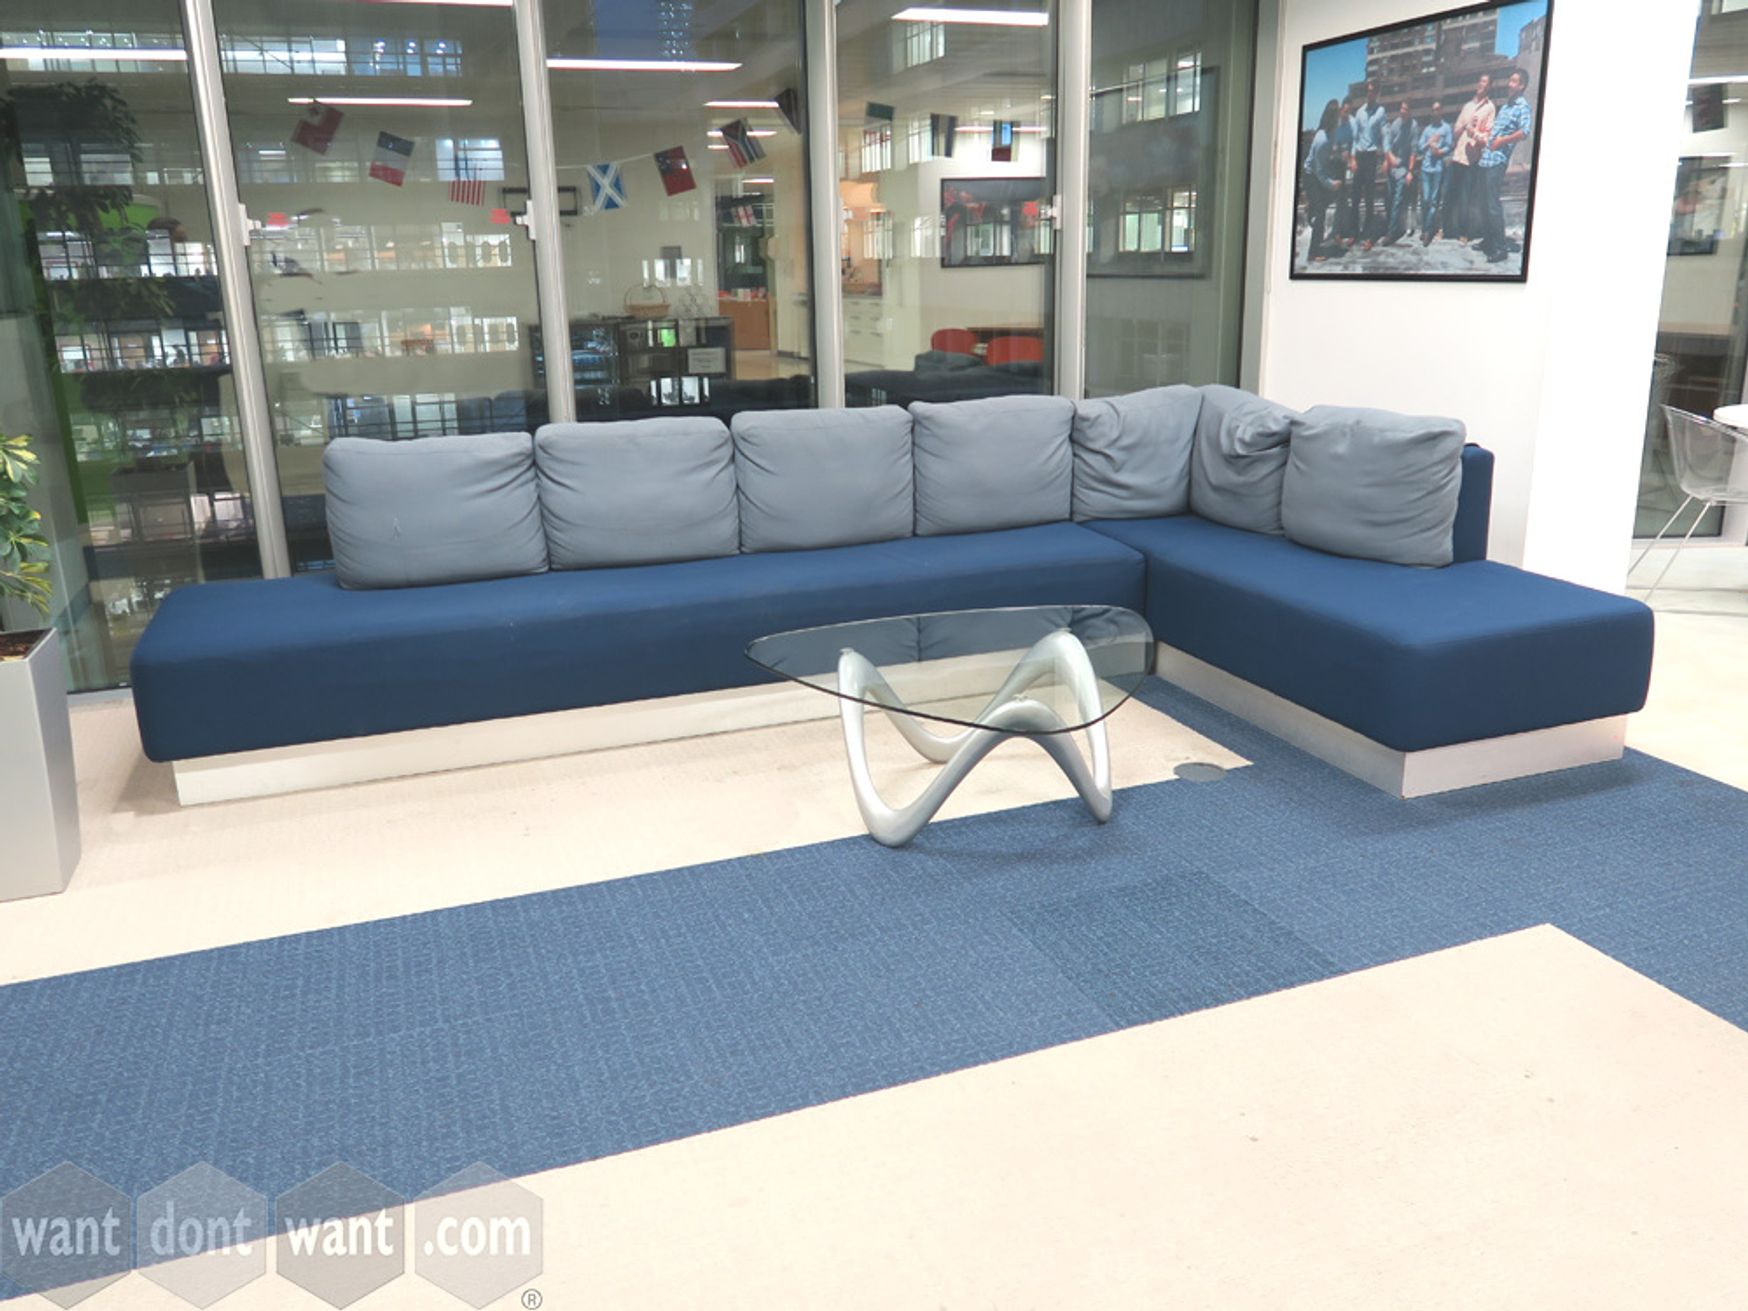 Used L Shape Sofa with Cushions Included